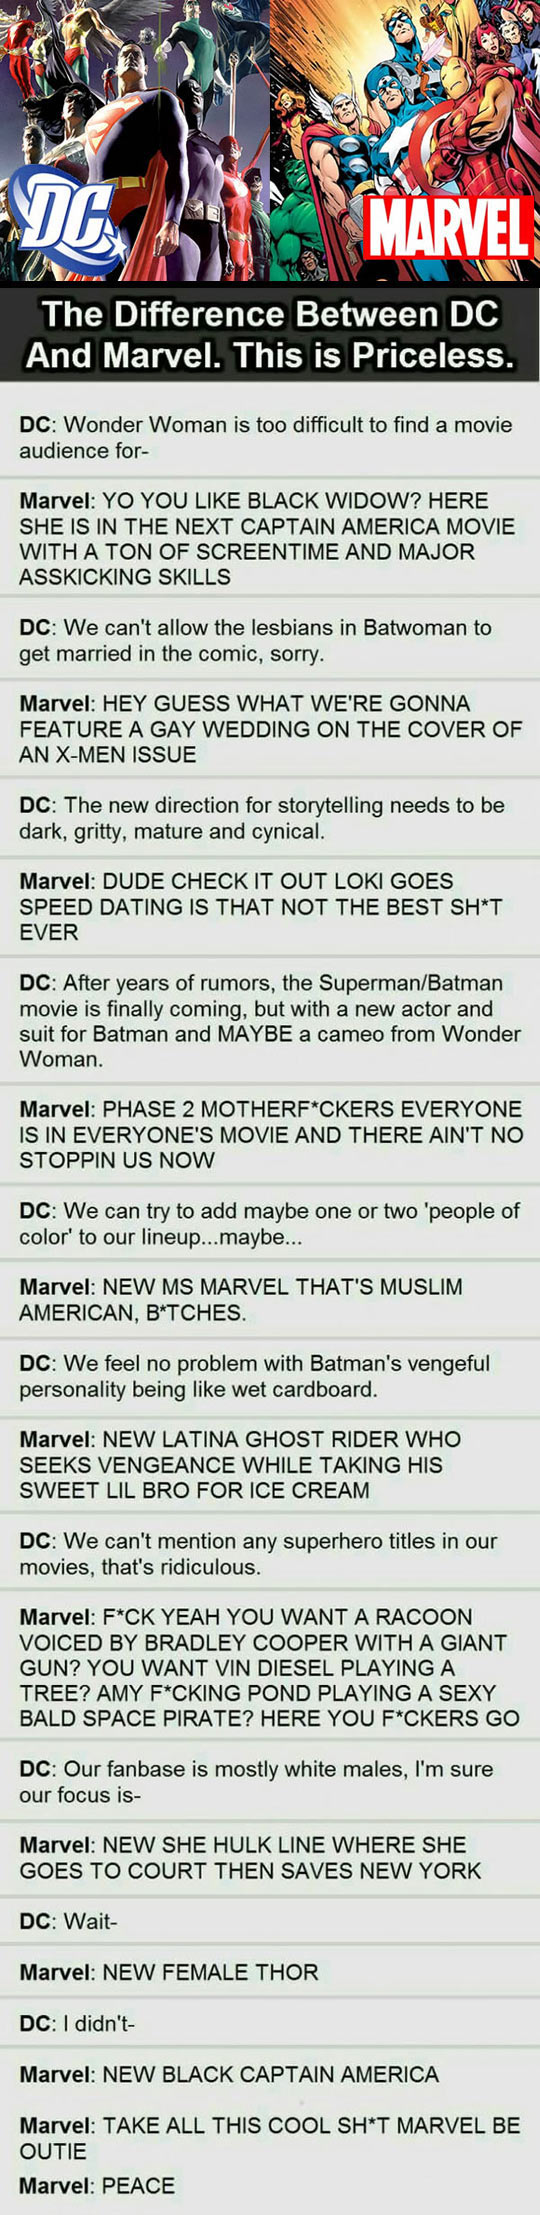 funny-DC-Marvel-differences-companies